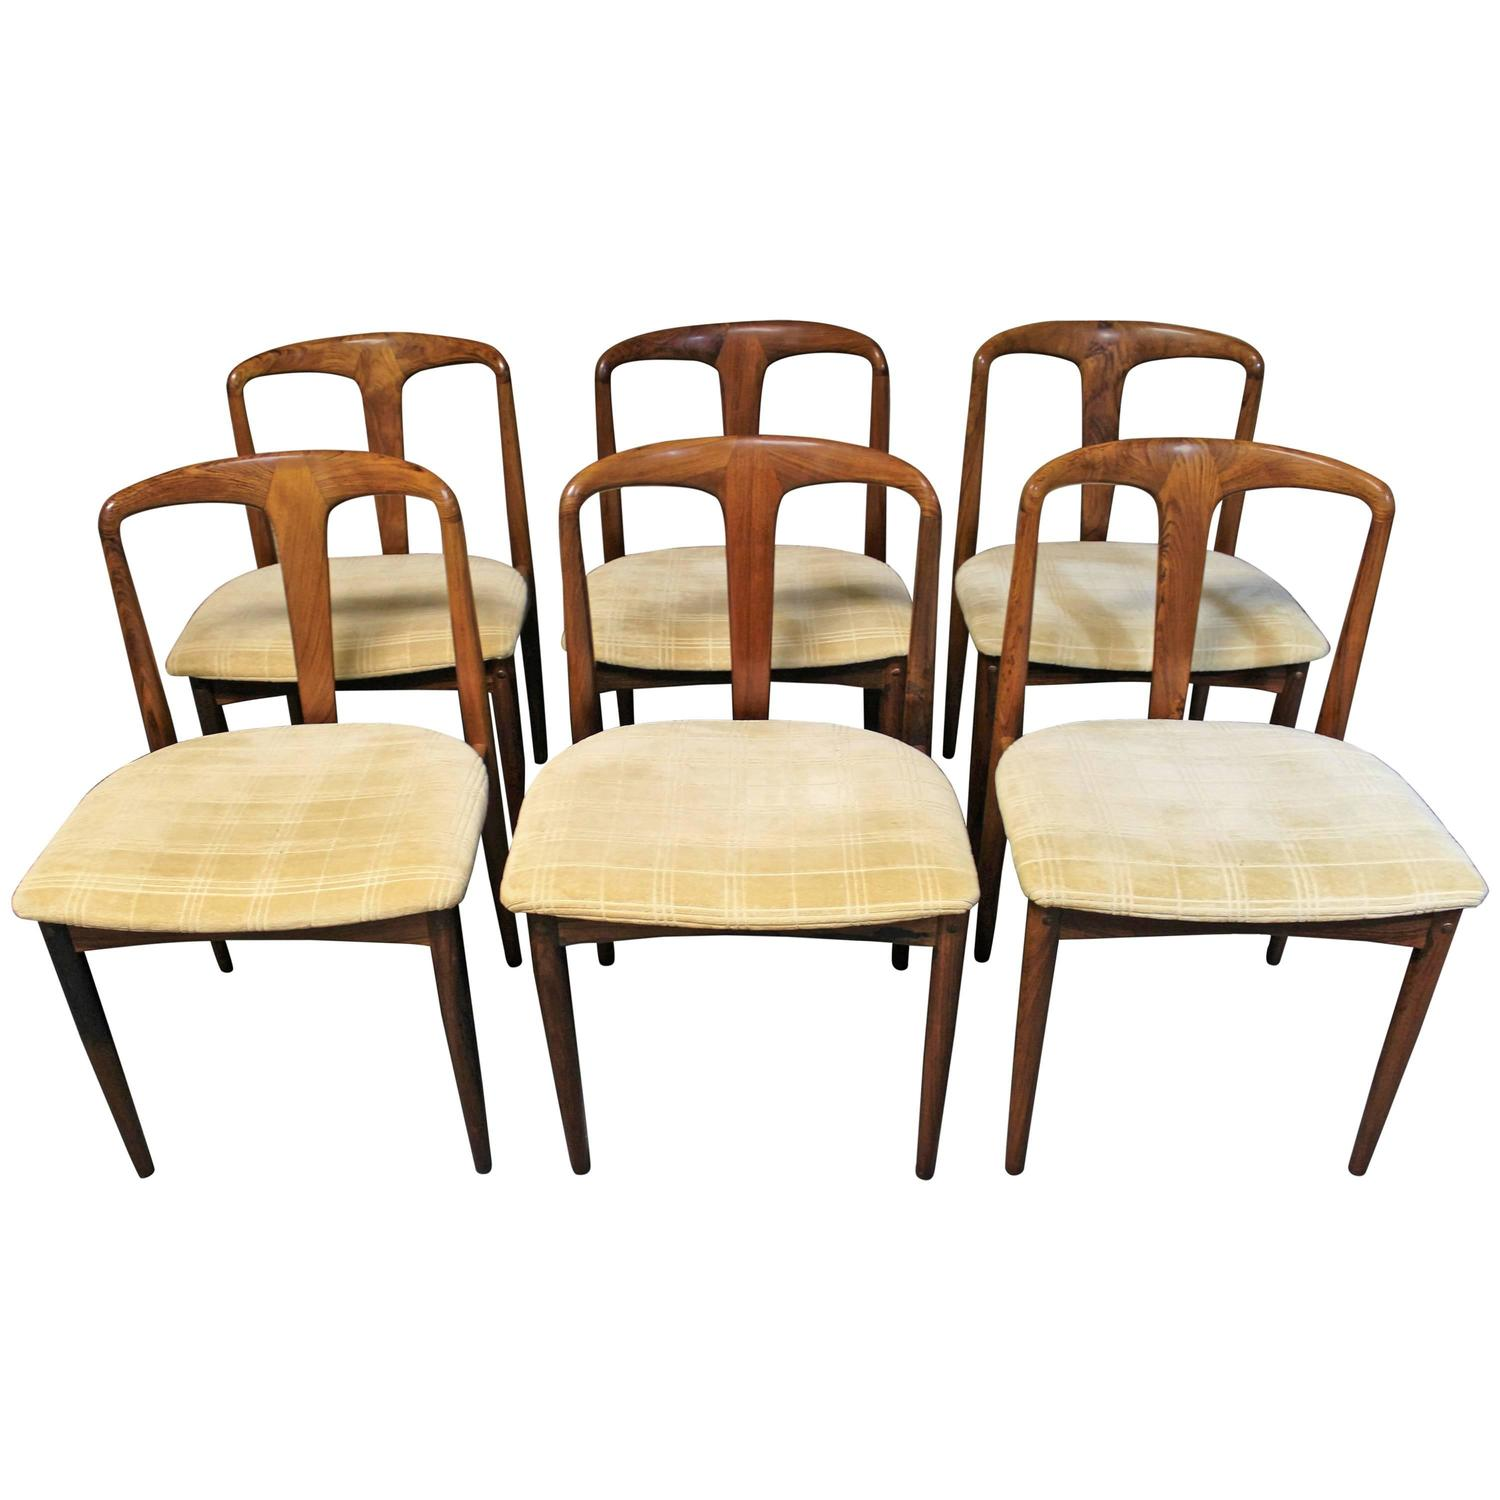 Due North Chairs Six Johannes Andersen Rosewood Quotjuliane Quot Dining Chairs For